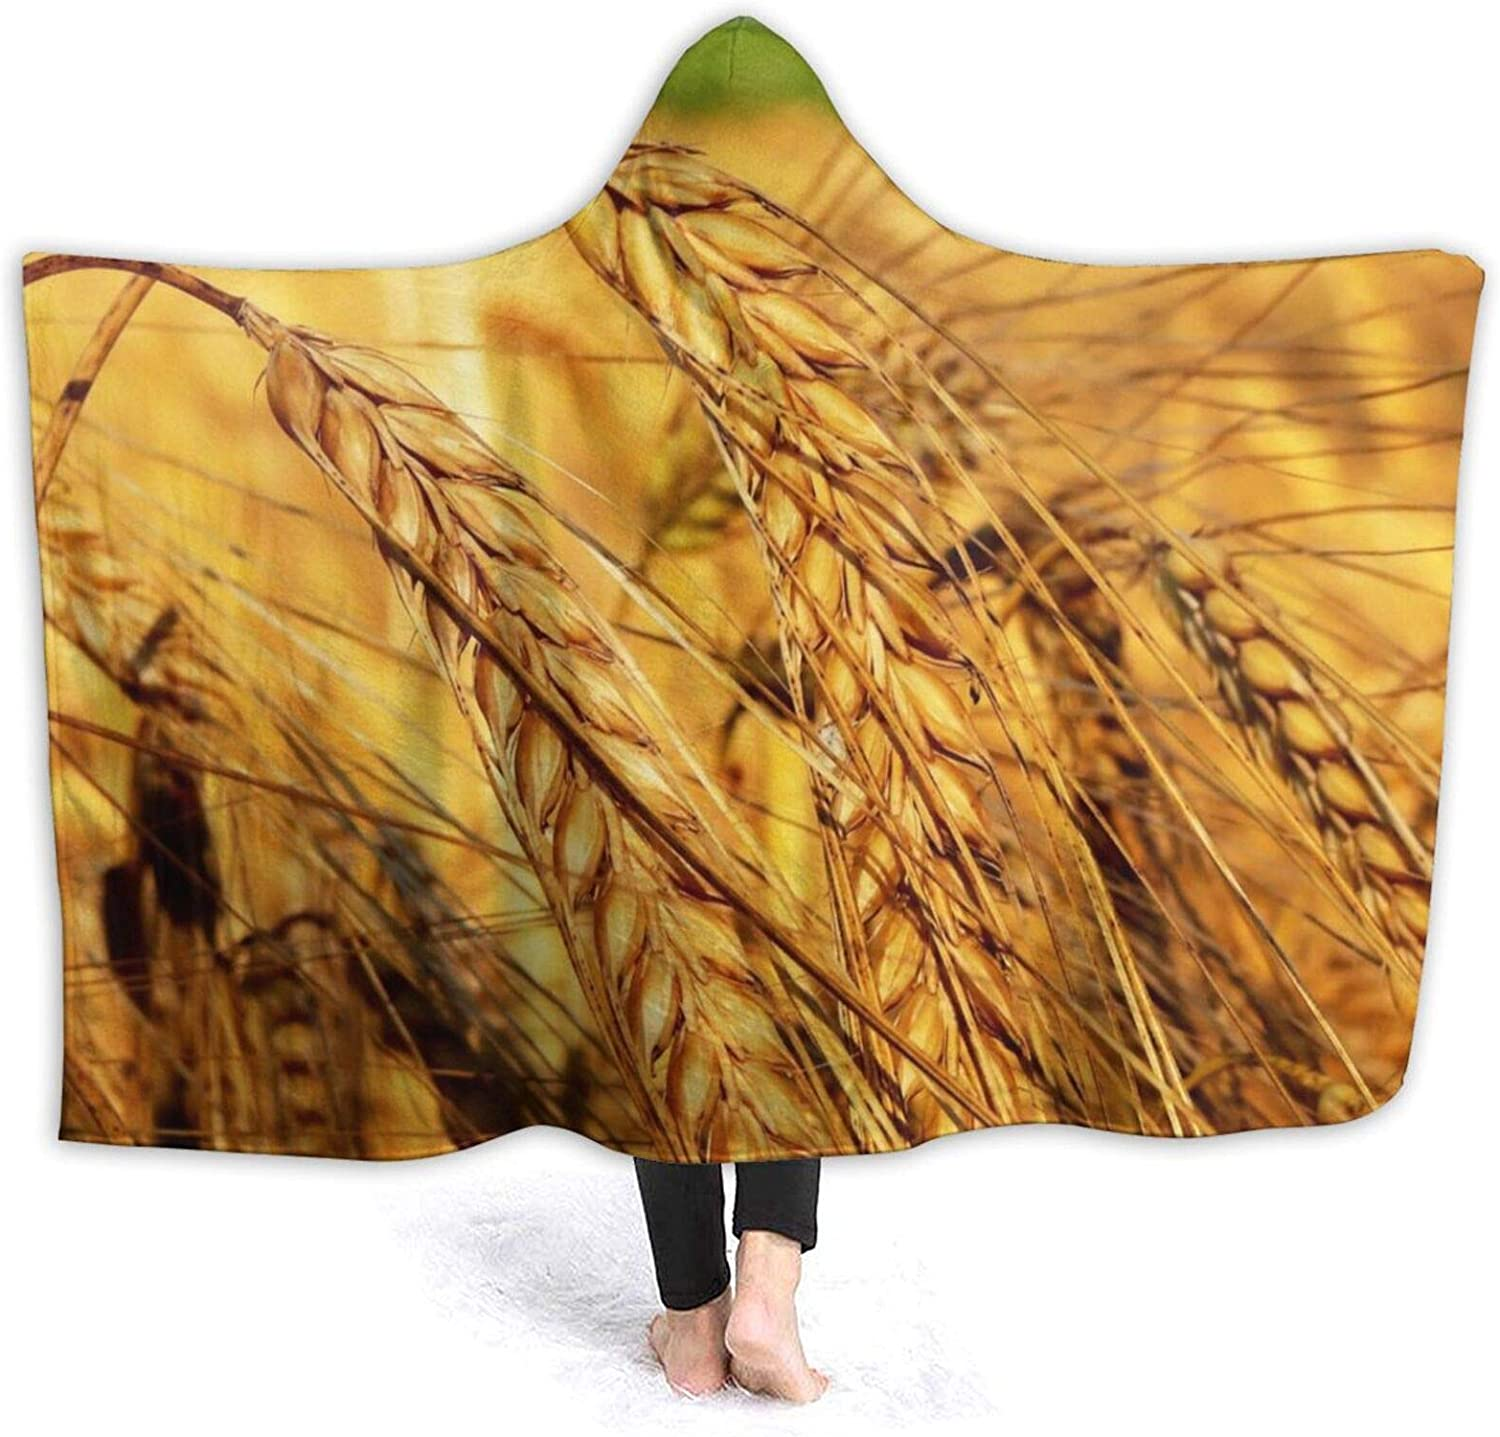 Blanket for Girls Hooded Max 59% Lowest price challenge OFF Kids Wearable Harvest Wheat T Hood Fall